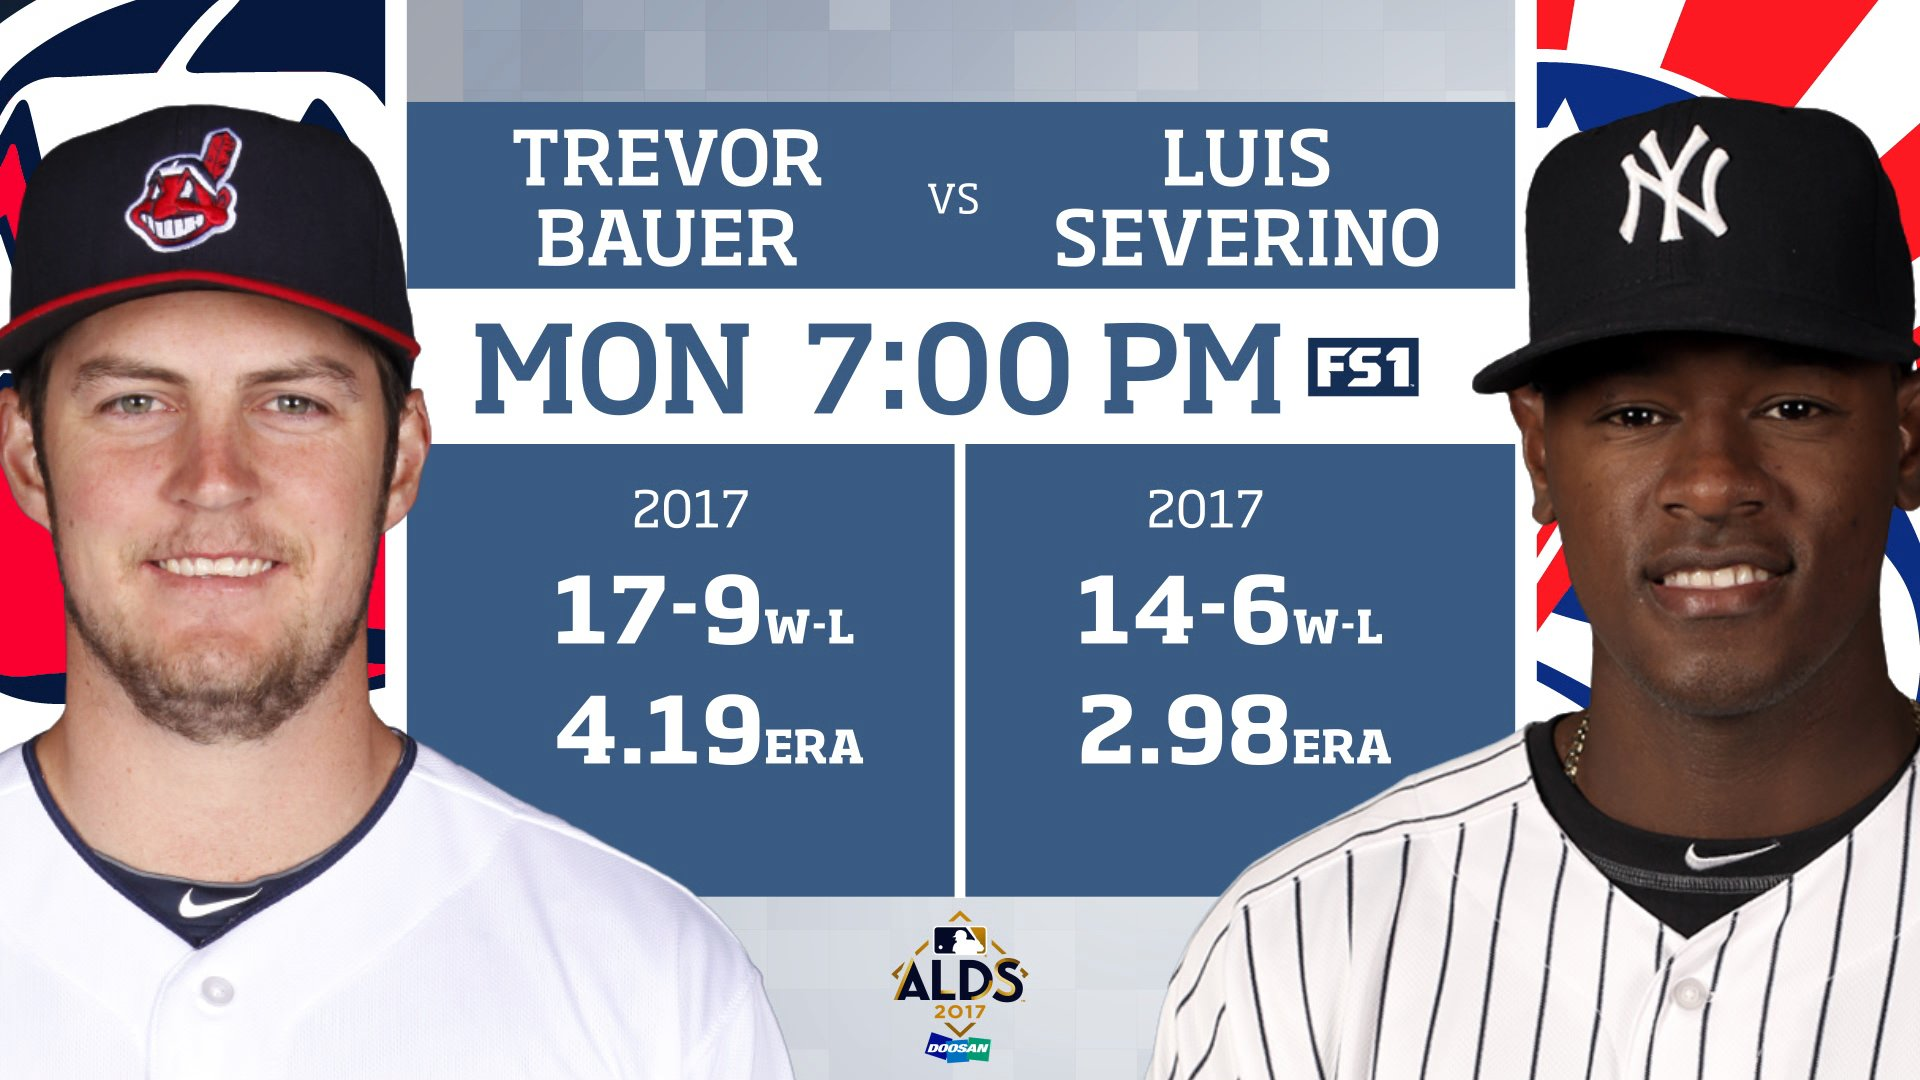 The @YankeesonDemand team gets you prepped for Game 4 with this breakdown and preview! �� https://t.co/dN1t8QlDmp https://t.co/7EDvDvS5gL